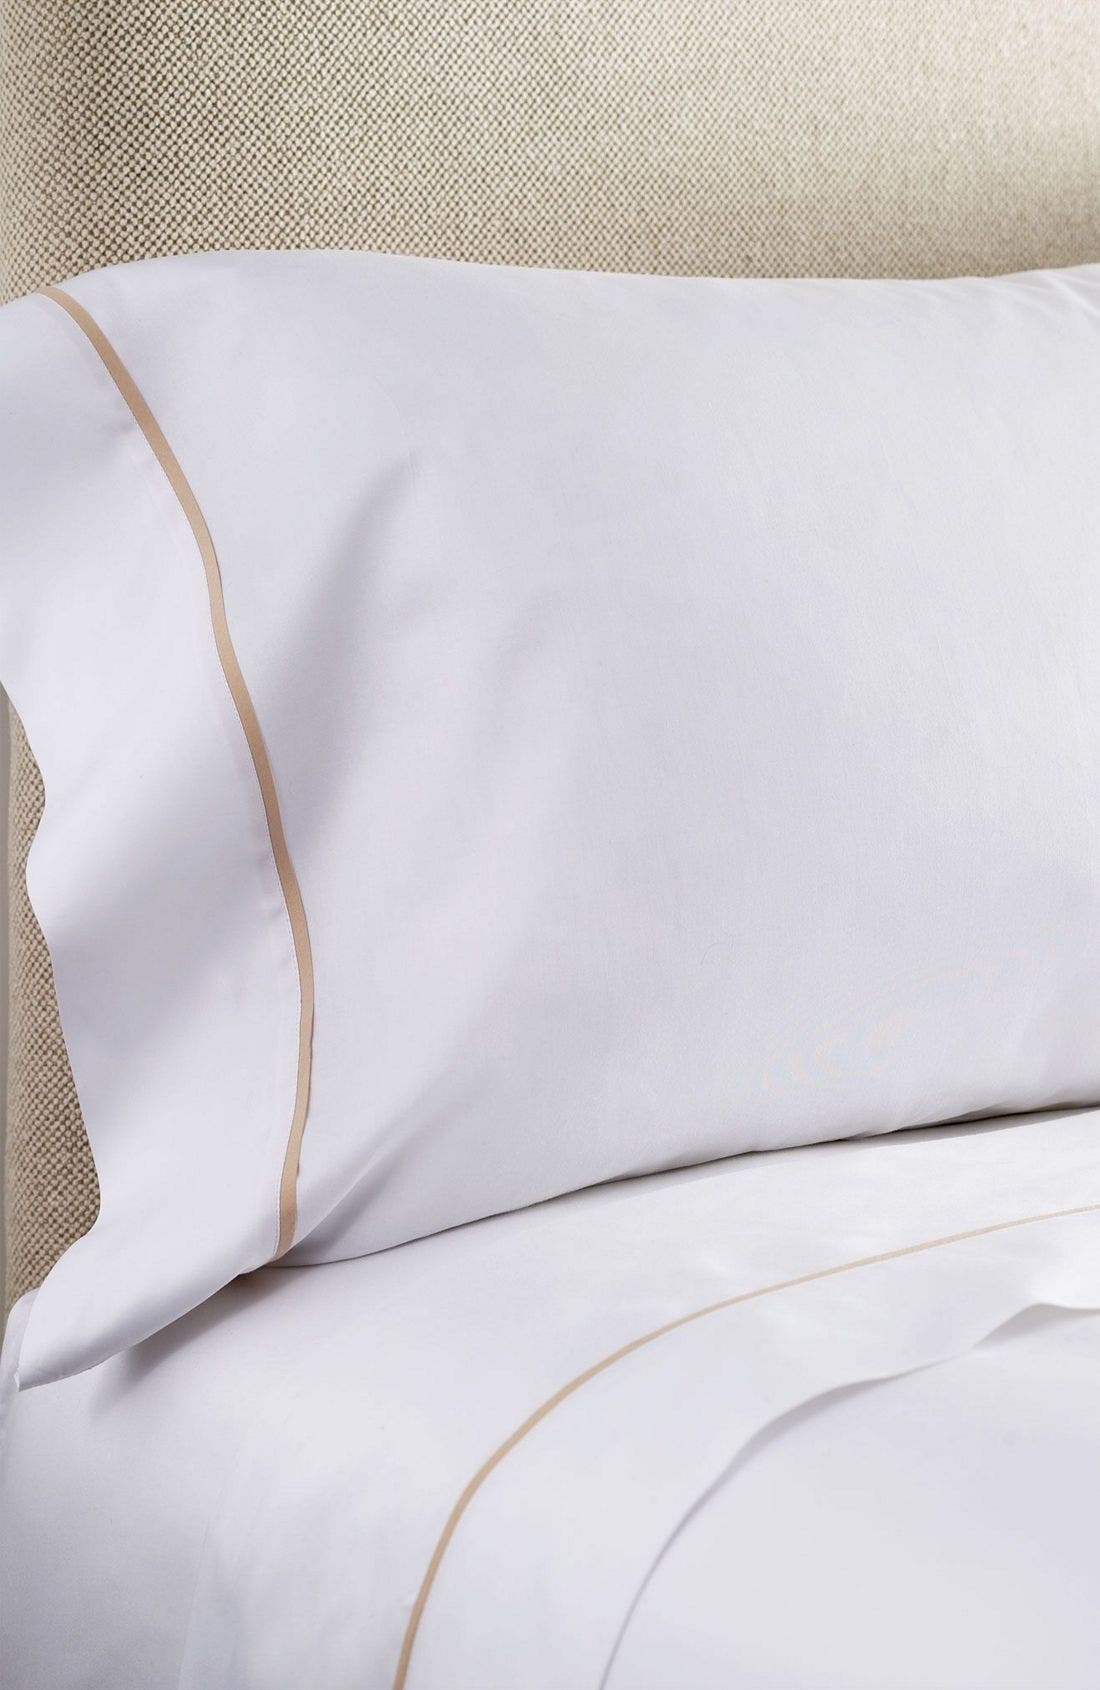 Westin Heavenly Bed<sup>®</sup> 300 Thread Count Egyptian Cotton Luxe Pillowcase,                             Main thumbnail 1, color,